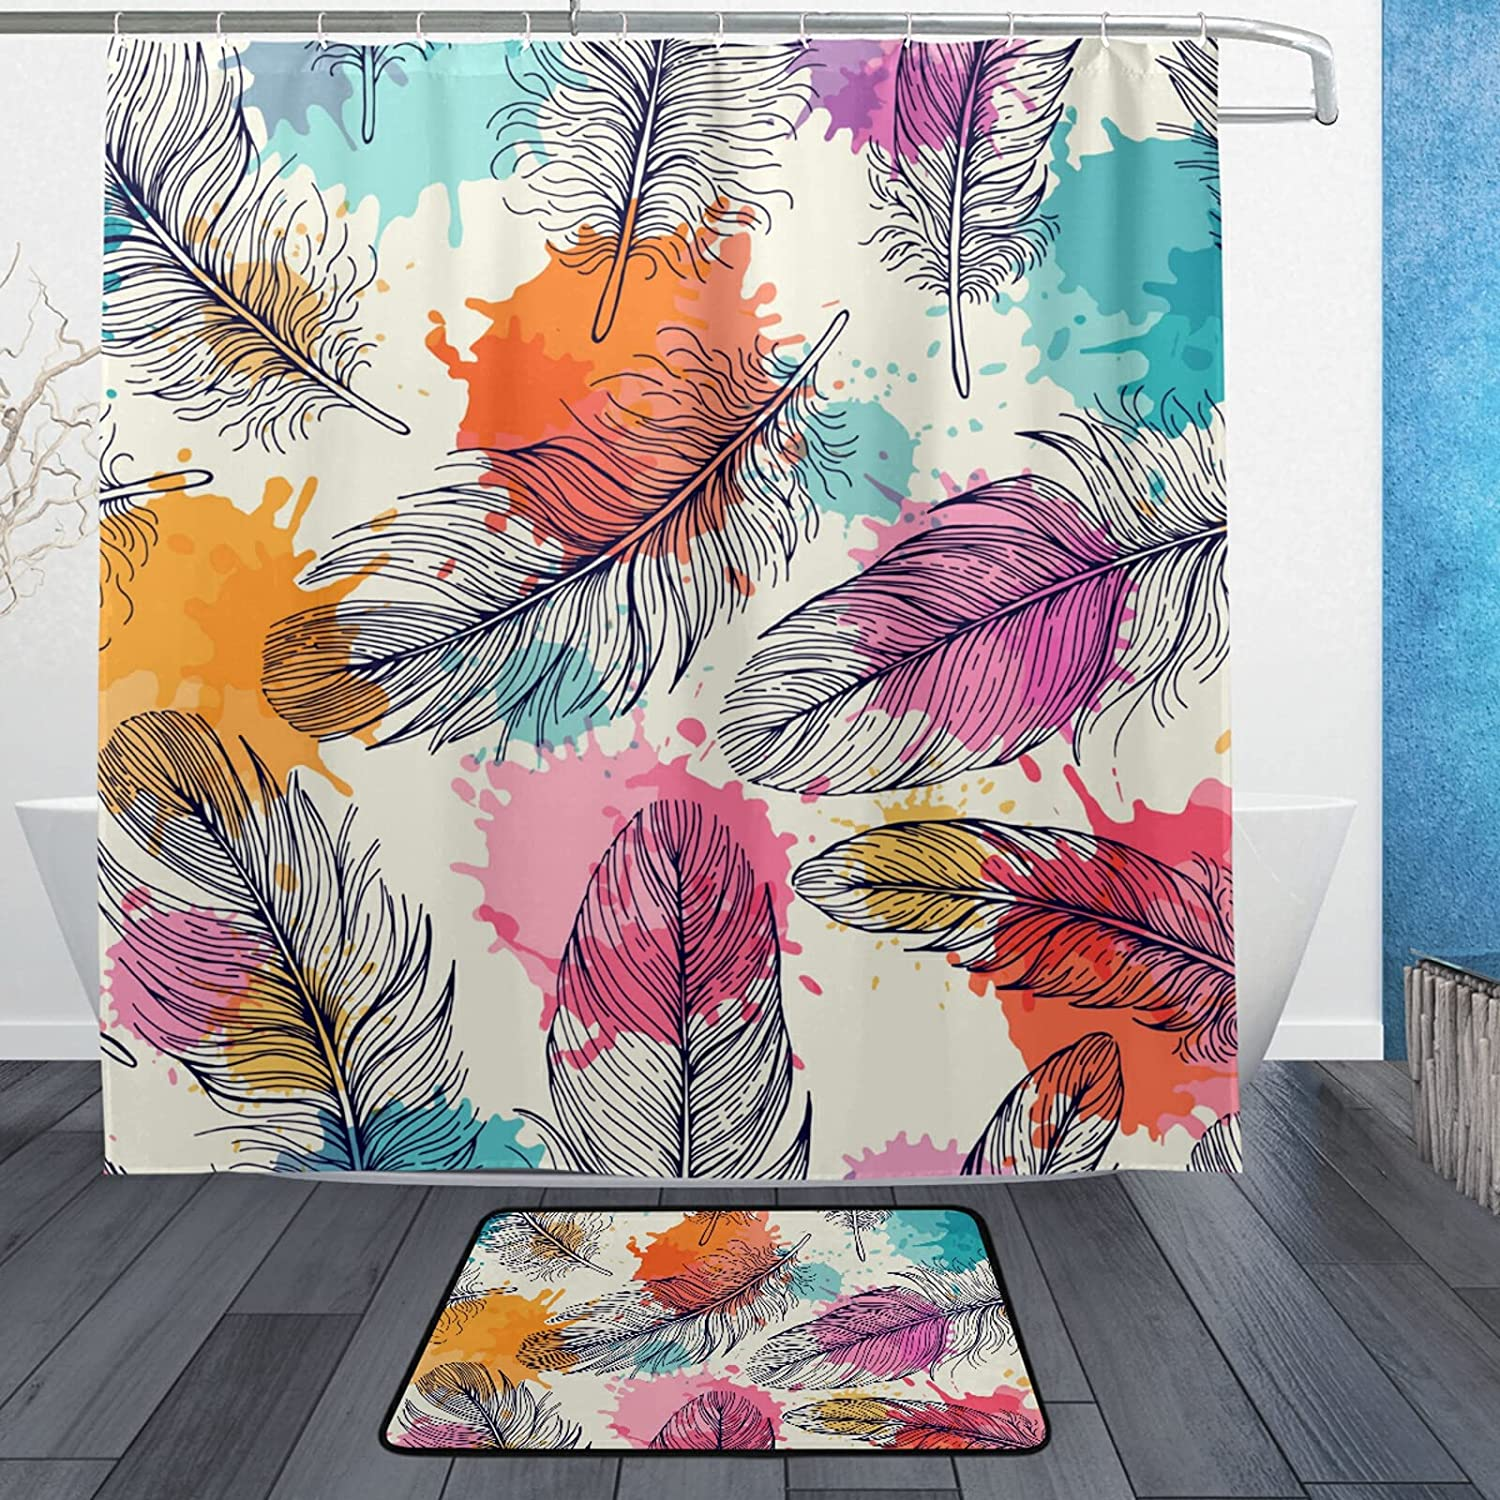 Feather Seamless Shower Curtains Compatible Liners Standard Price reduction Ranking TOP12 with